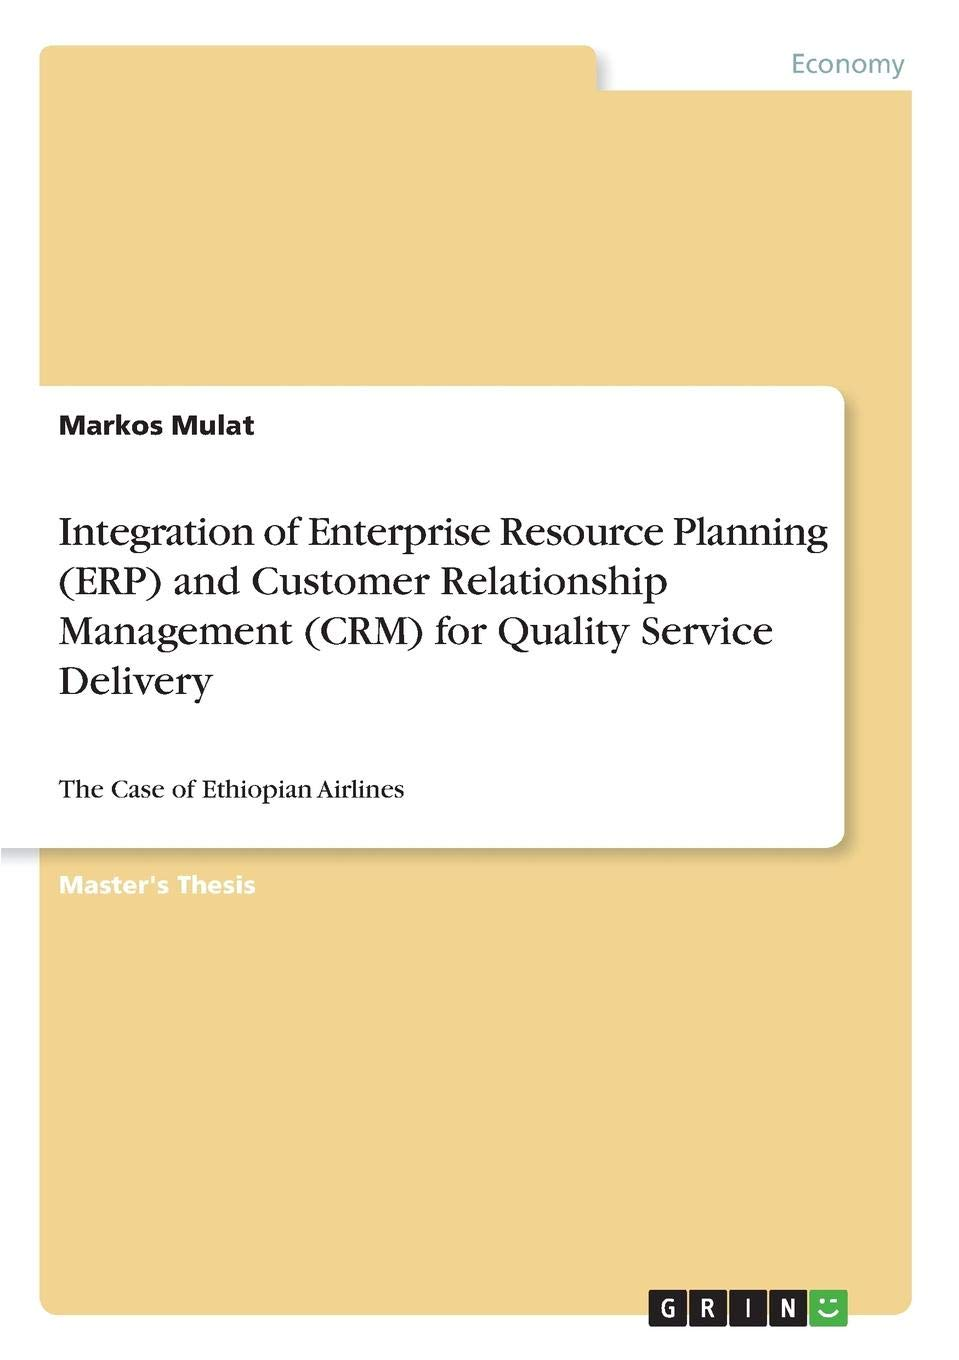 Integration of Enterprise Resource Planning (Erp) and Customer